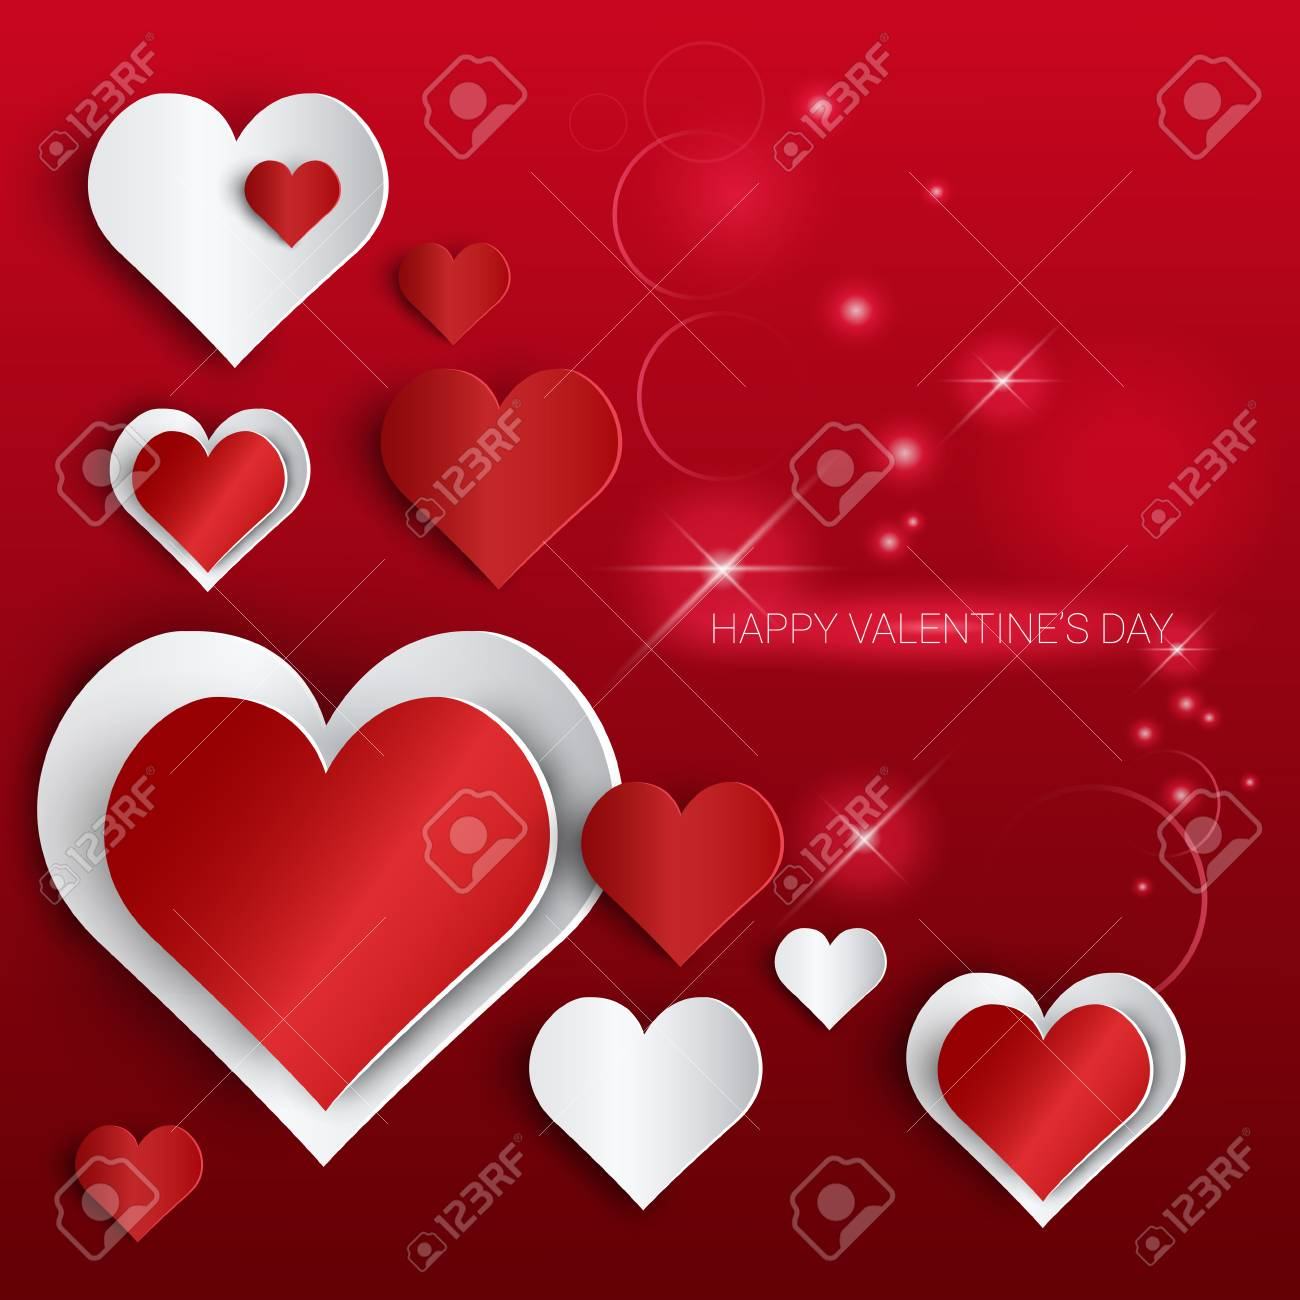 Valentine Day Gift Card Holiday Love Heart Shape Banner With